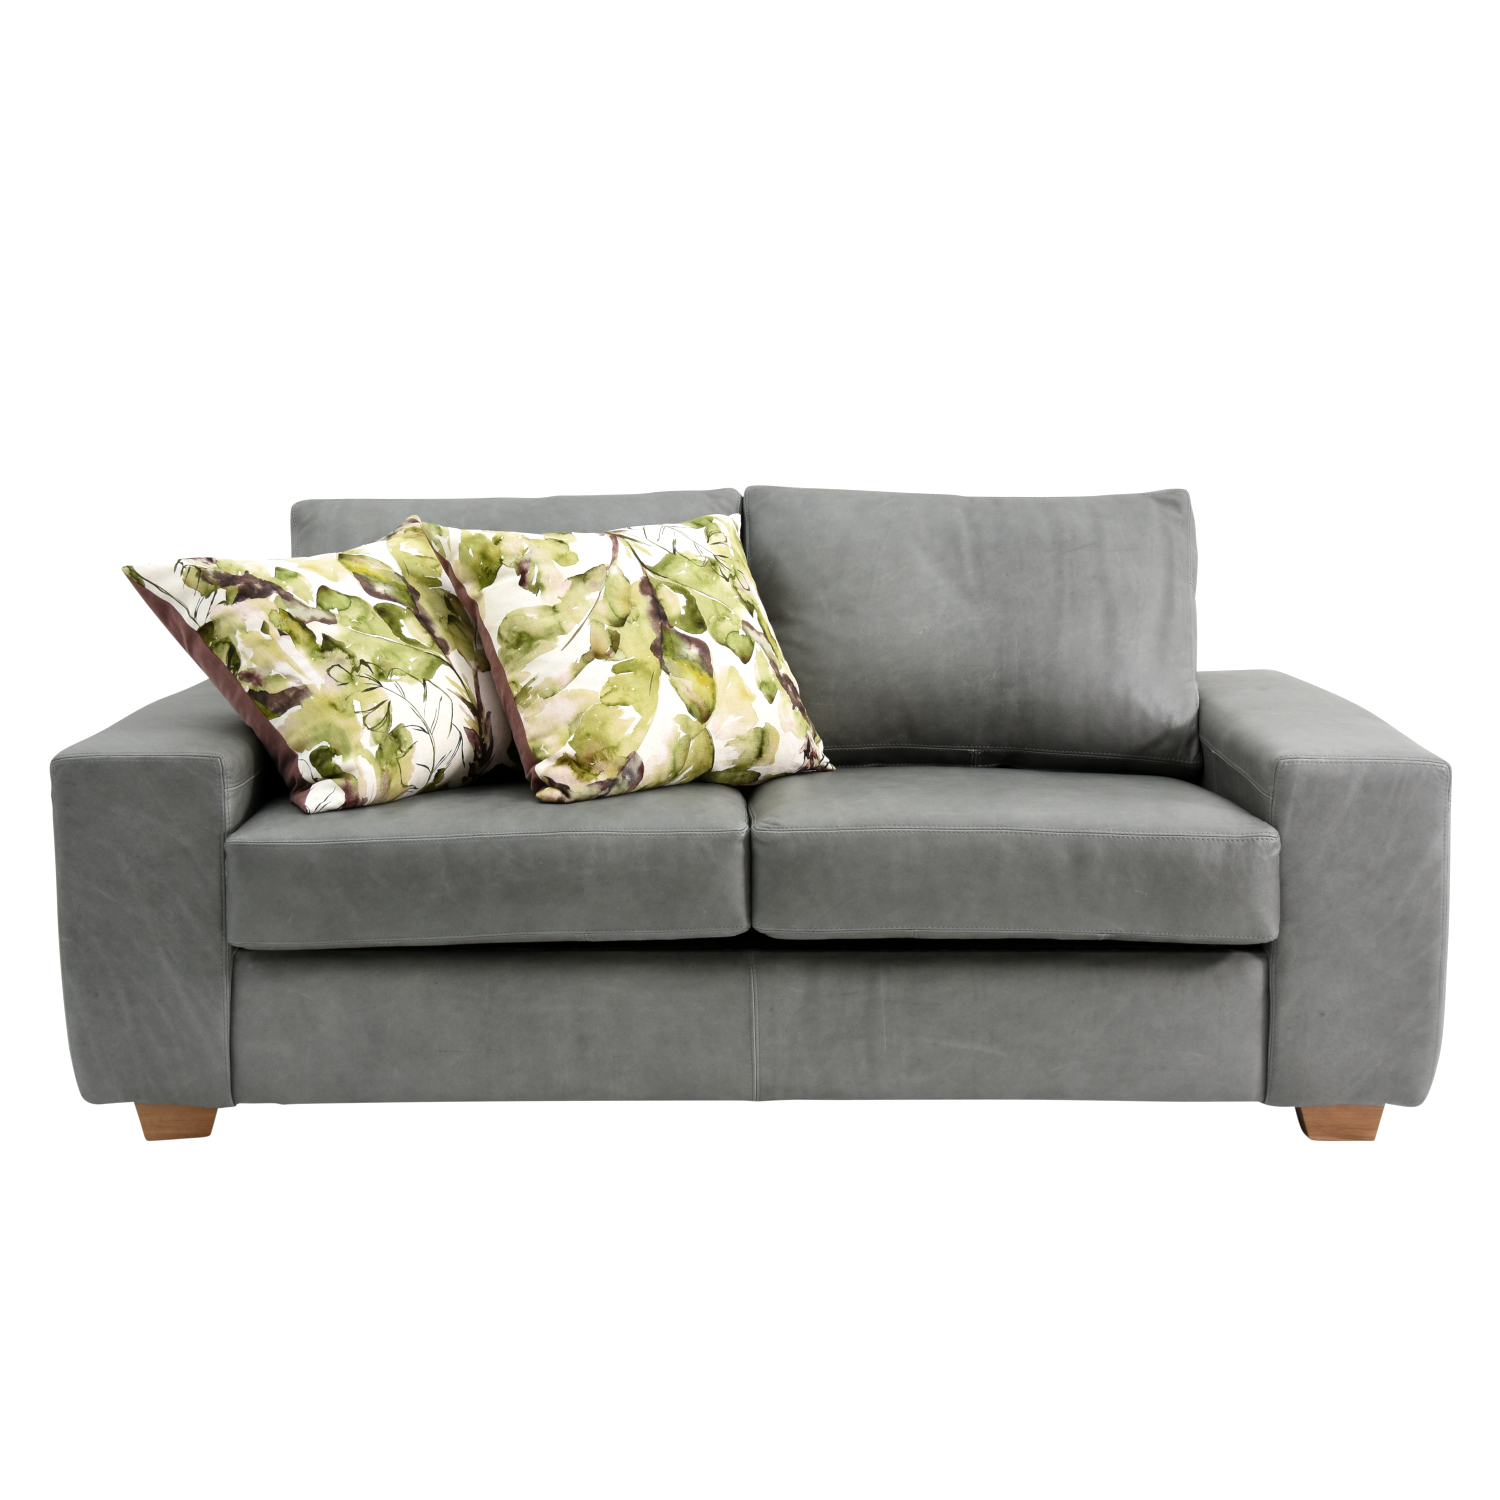 Square Arm Sleeper Couch Incanda